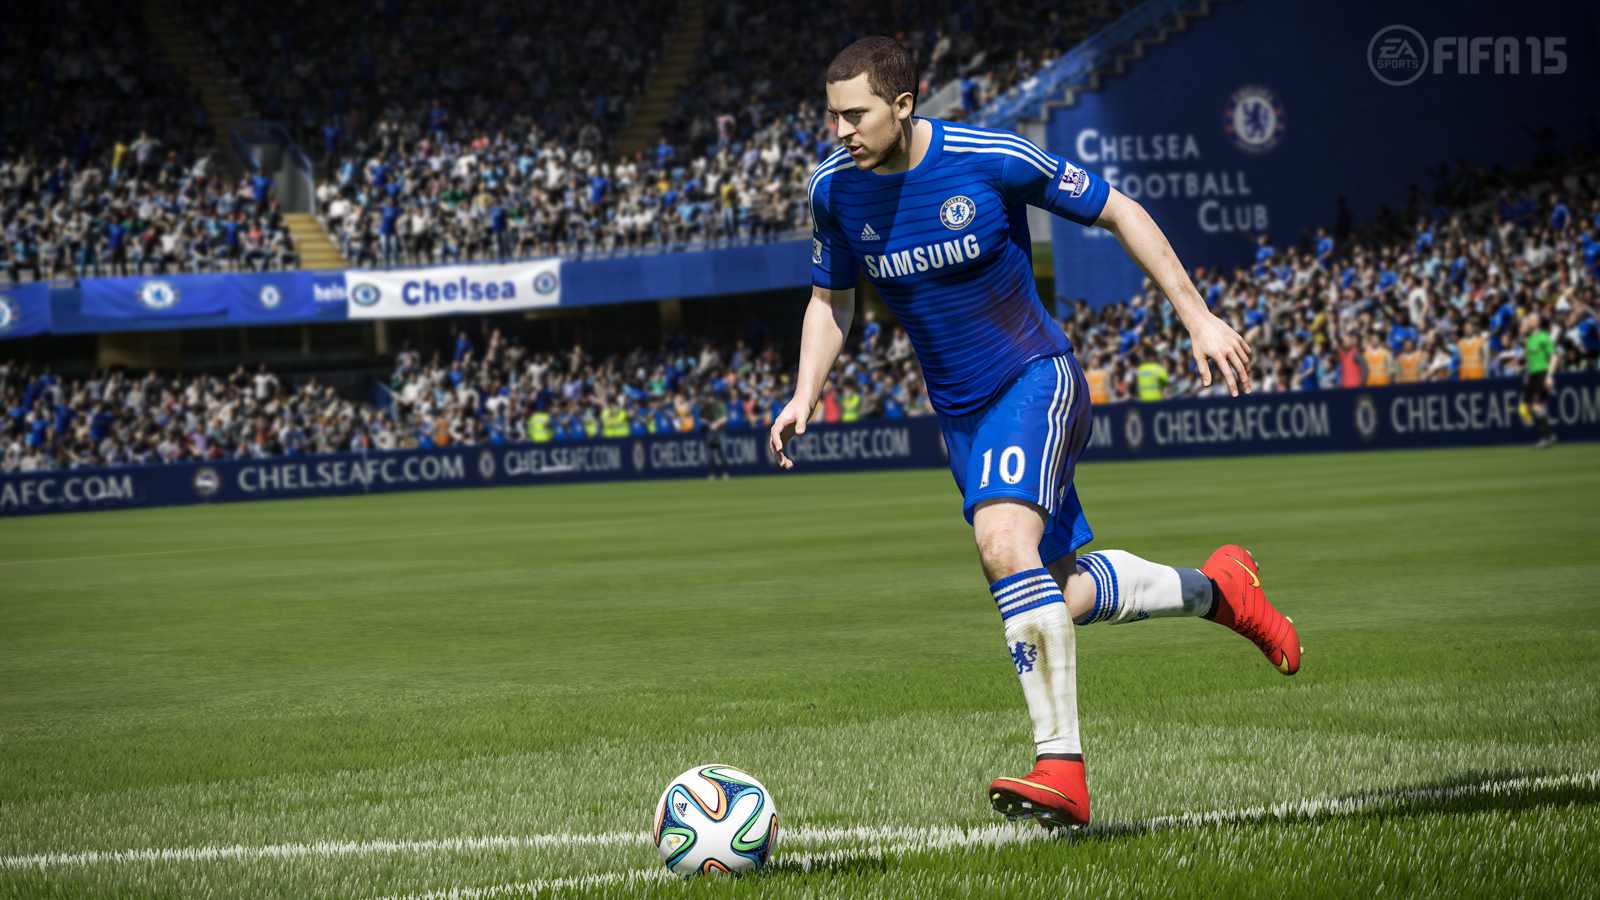 At Long Last: Our FIFA 15 Slider Set For Career Mode · fifa15_xboxone_ps4_authenticplayervisual_hazard_wm